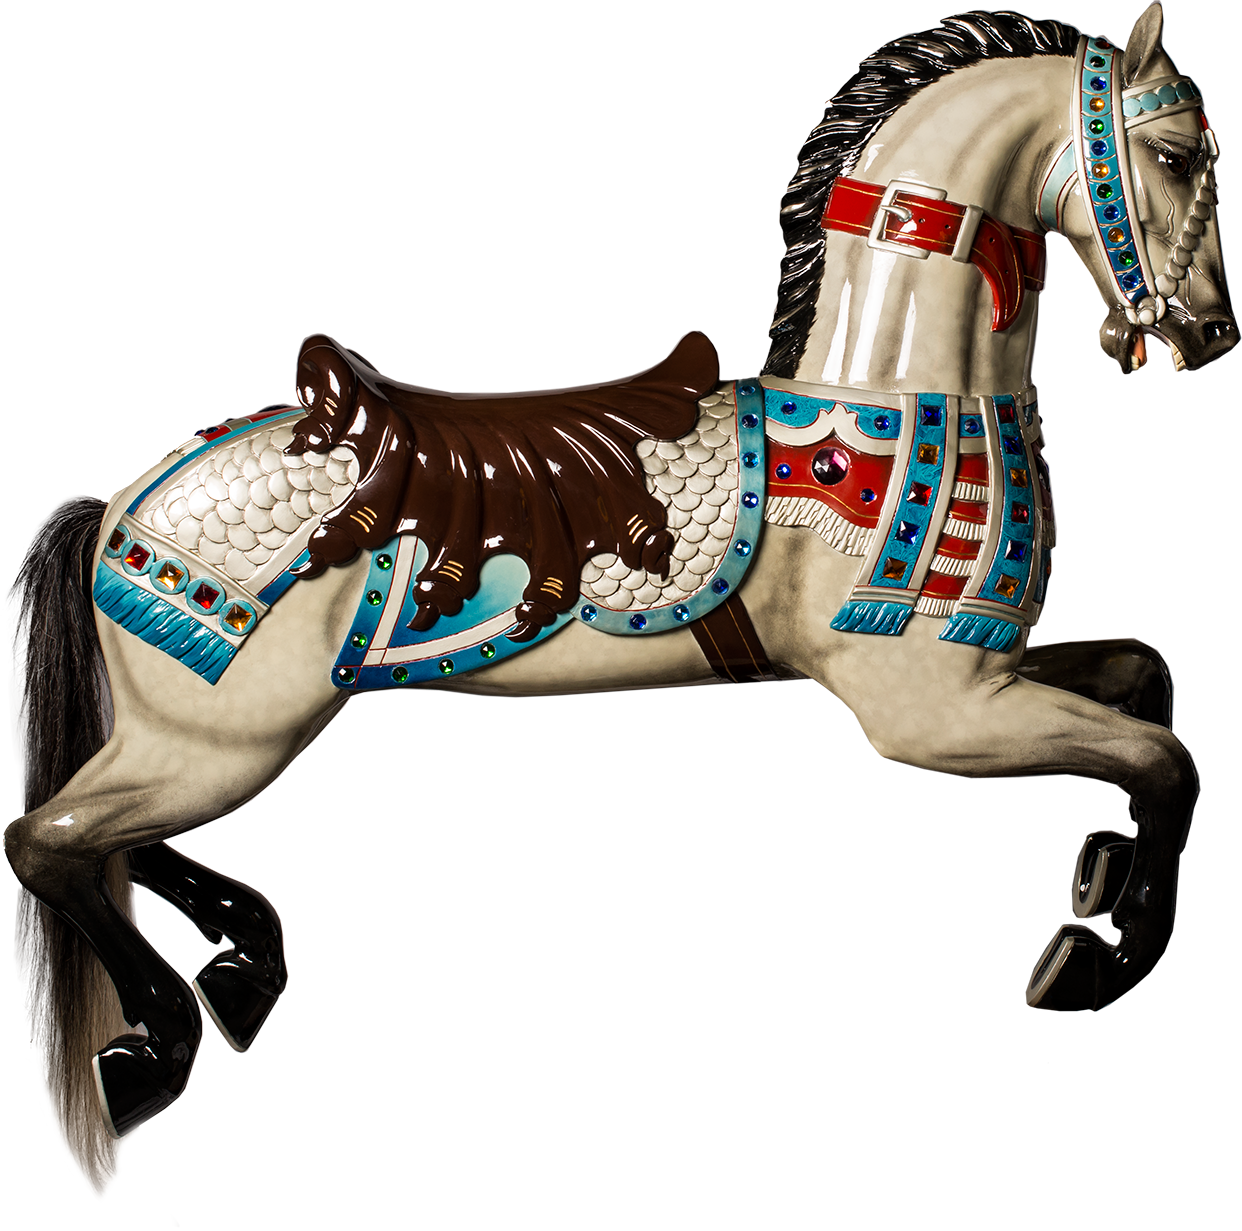 7A - Outside Horse - Litigator Image